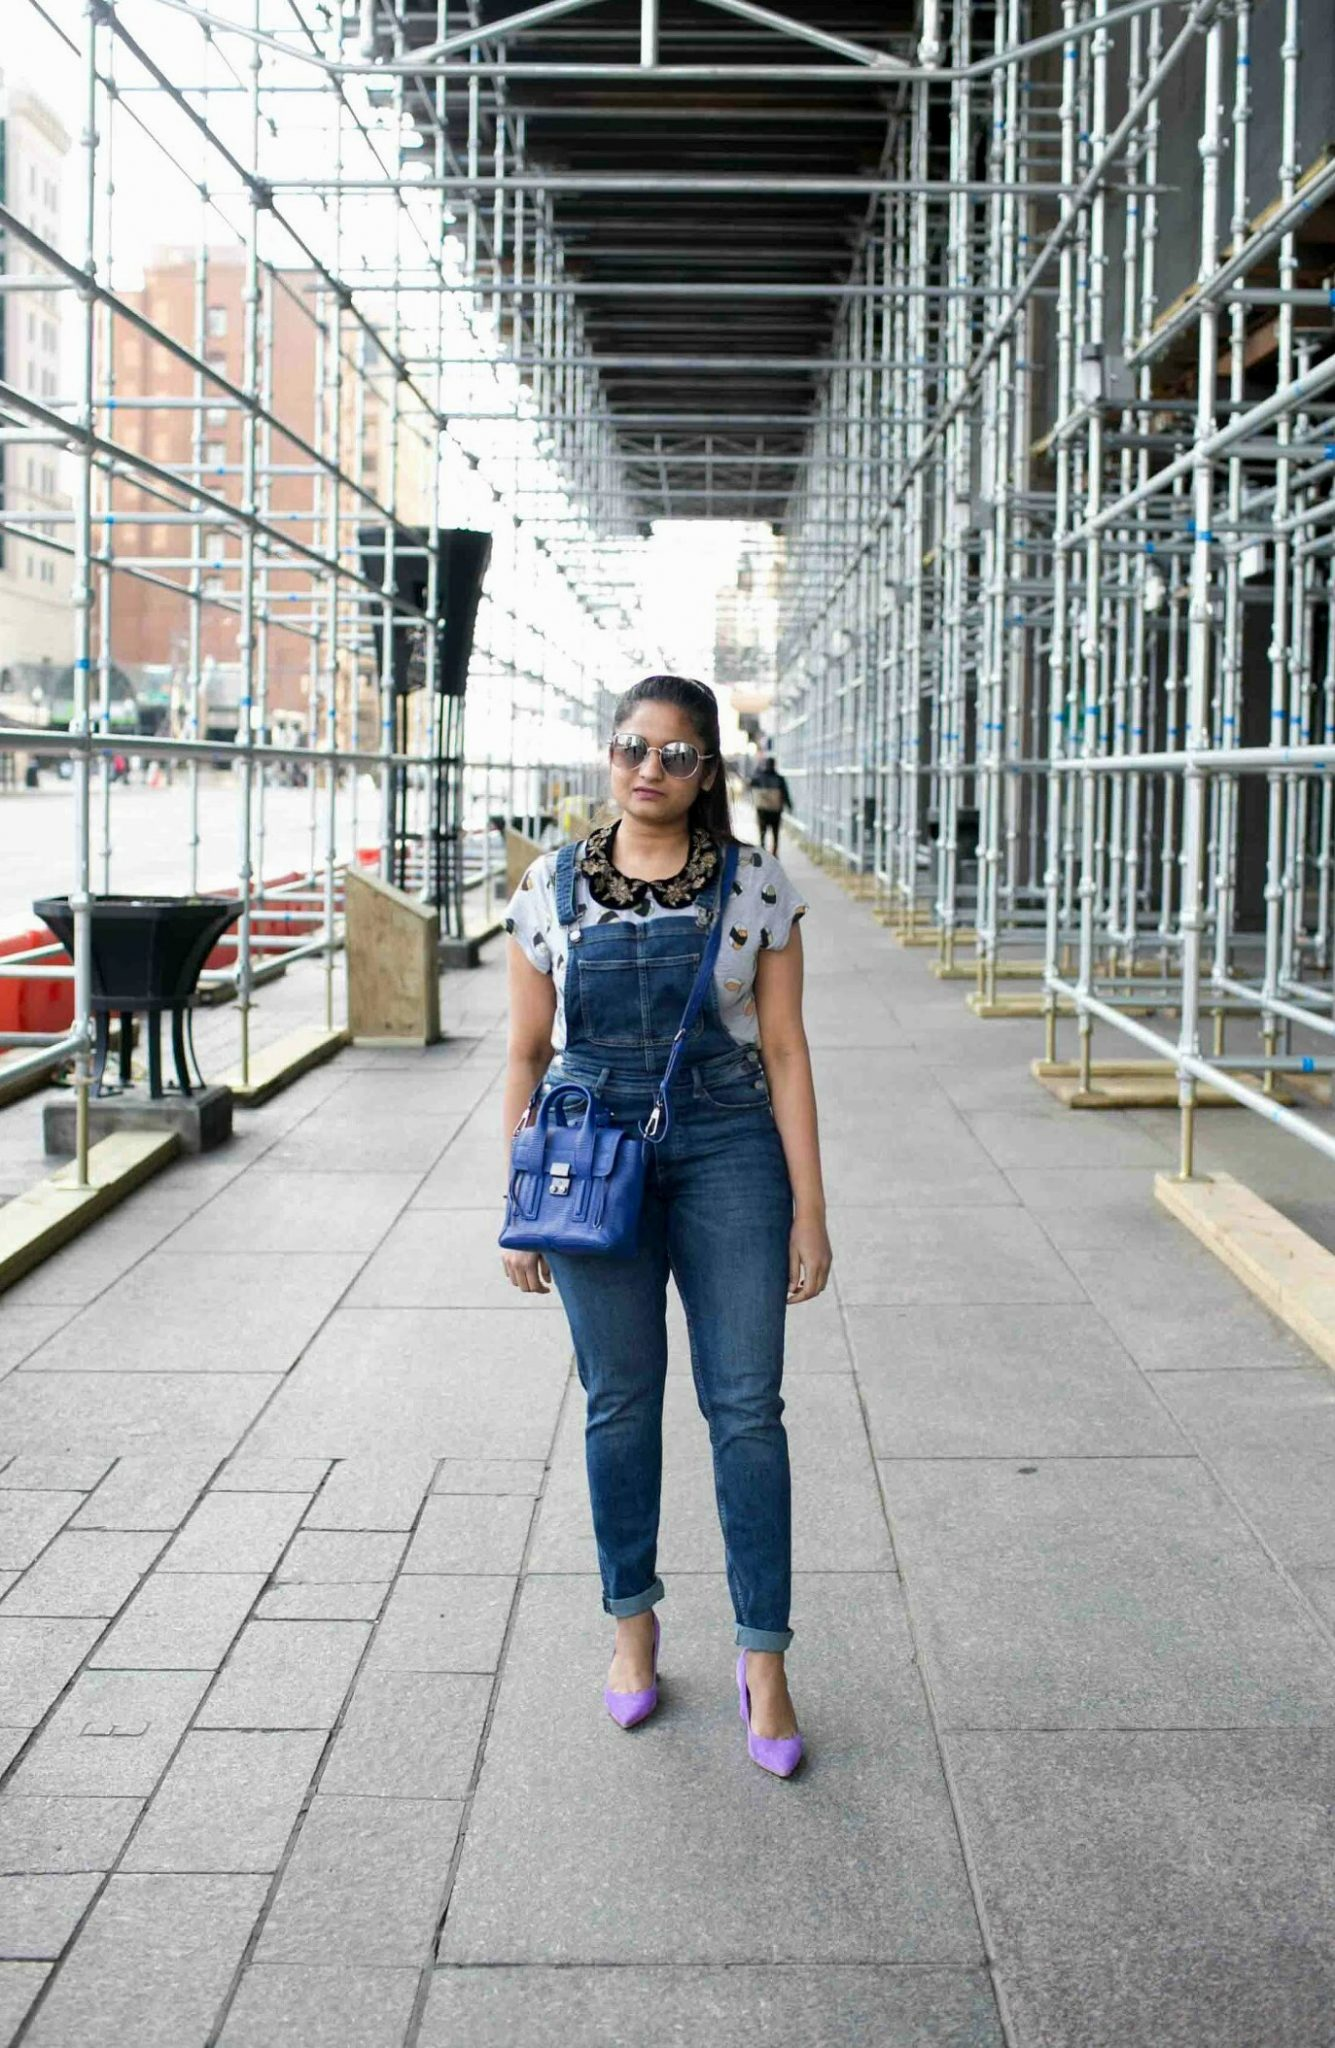 Lifestyle blogger suri of dreaming loud sharing how to look colorful and quirky everyday | H&M Overalls outfit featured by popular Ohio modest fashion blogger, Dreaming Loud